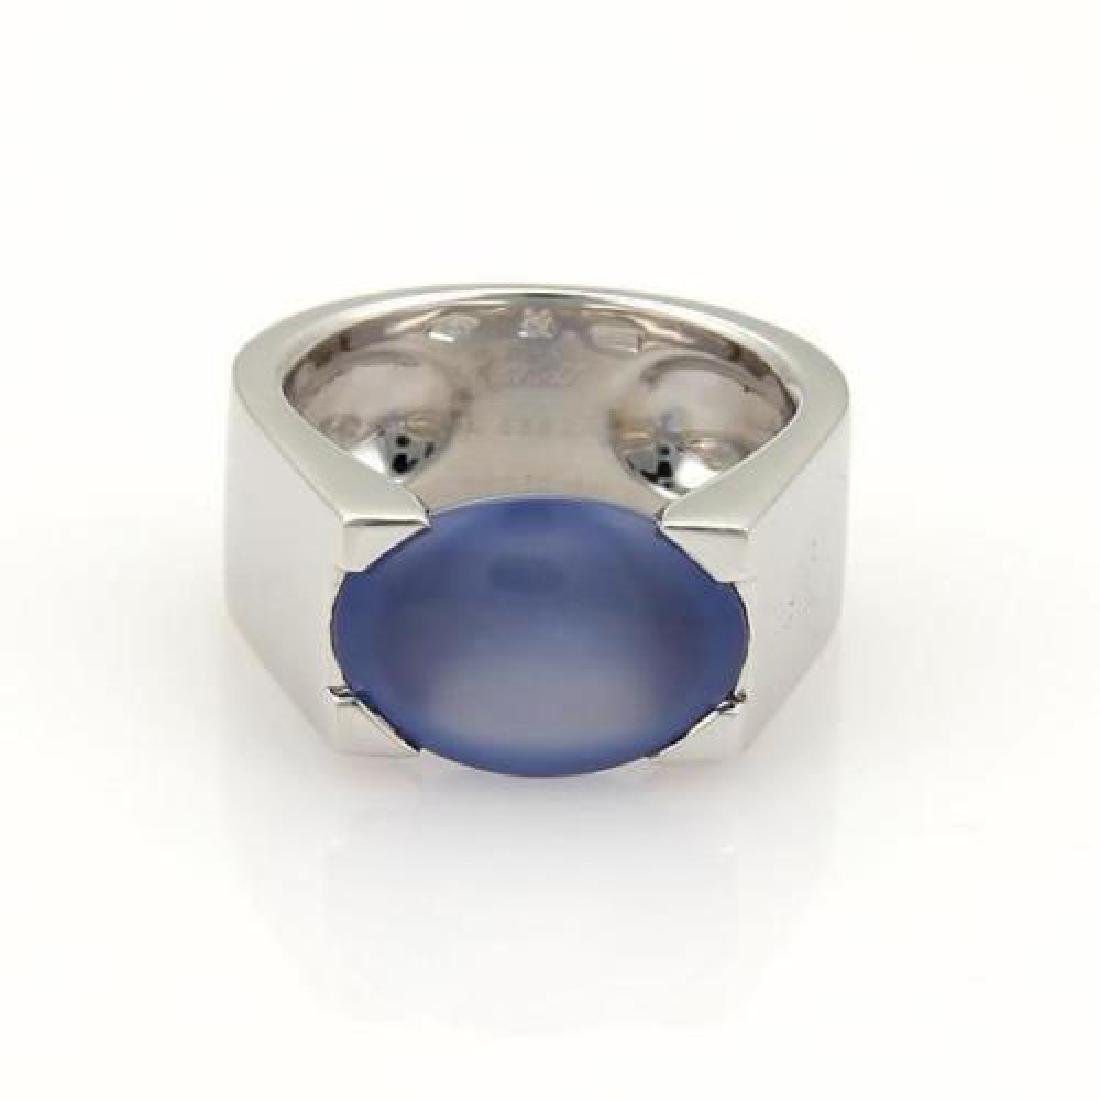 CARTIER CHALCEDONY 18K GOLD RING